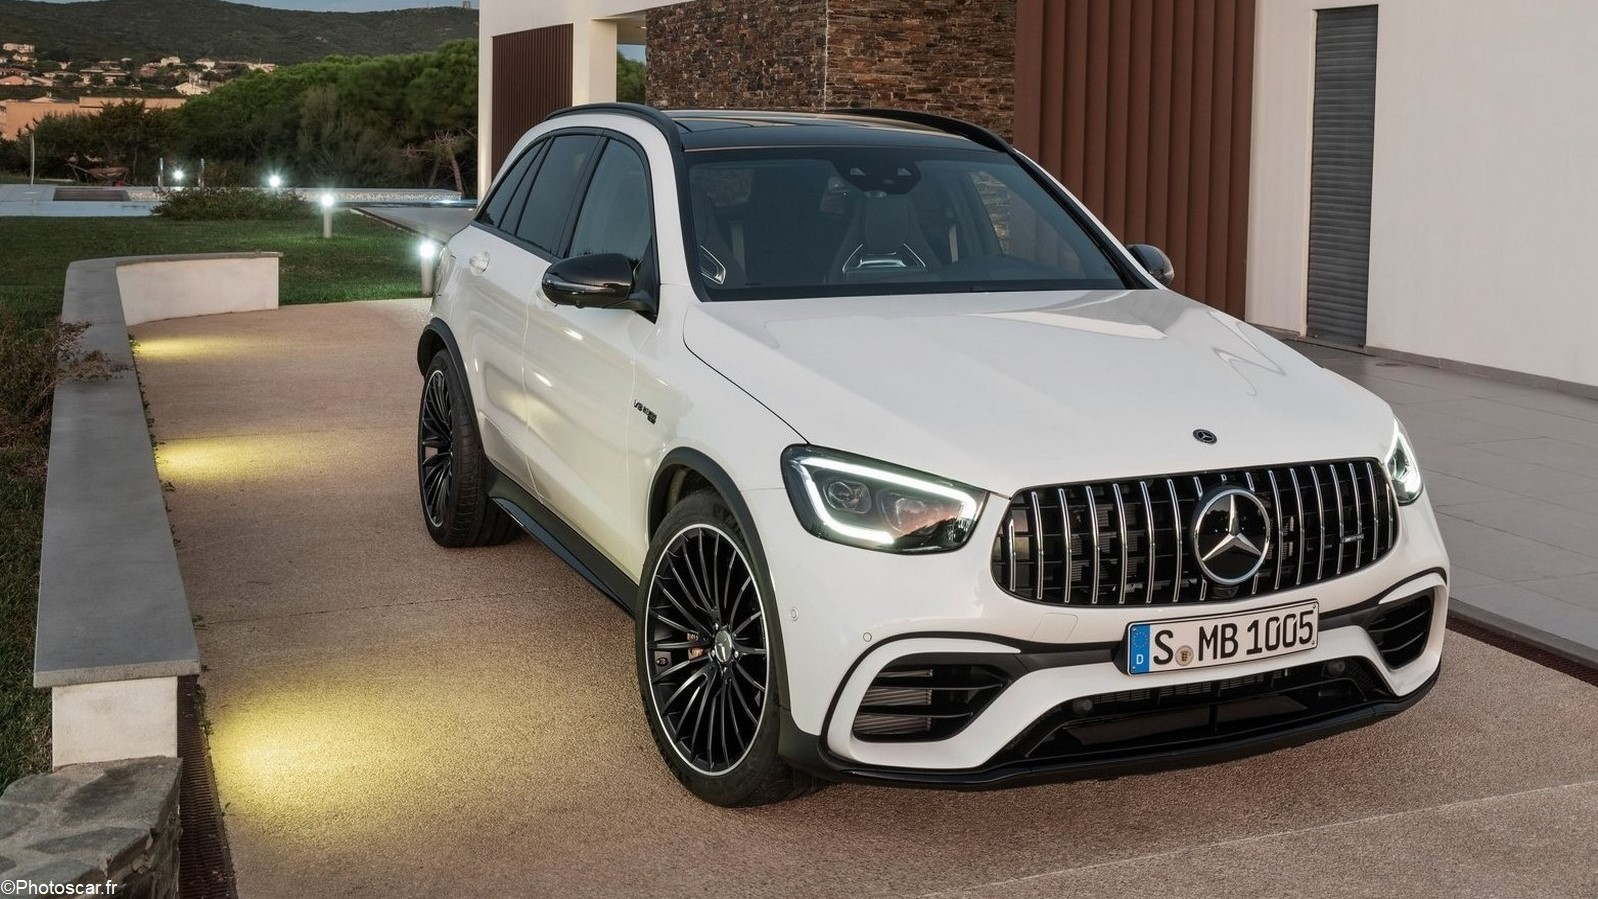 Mercedes Benz GLC63 S AMG 2020